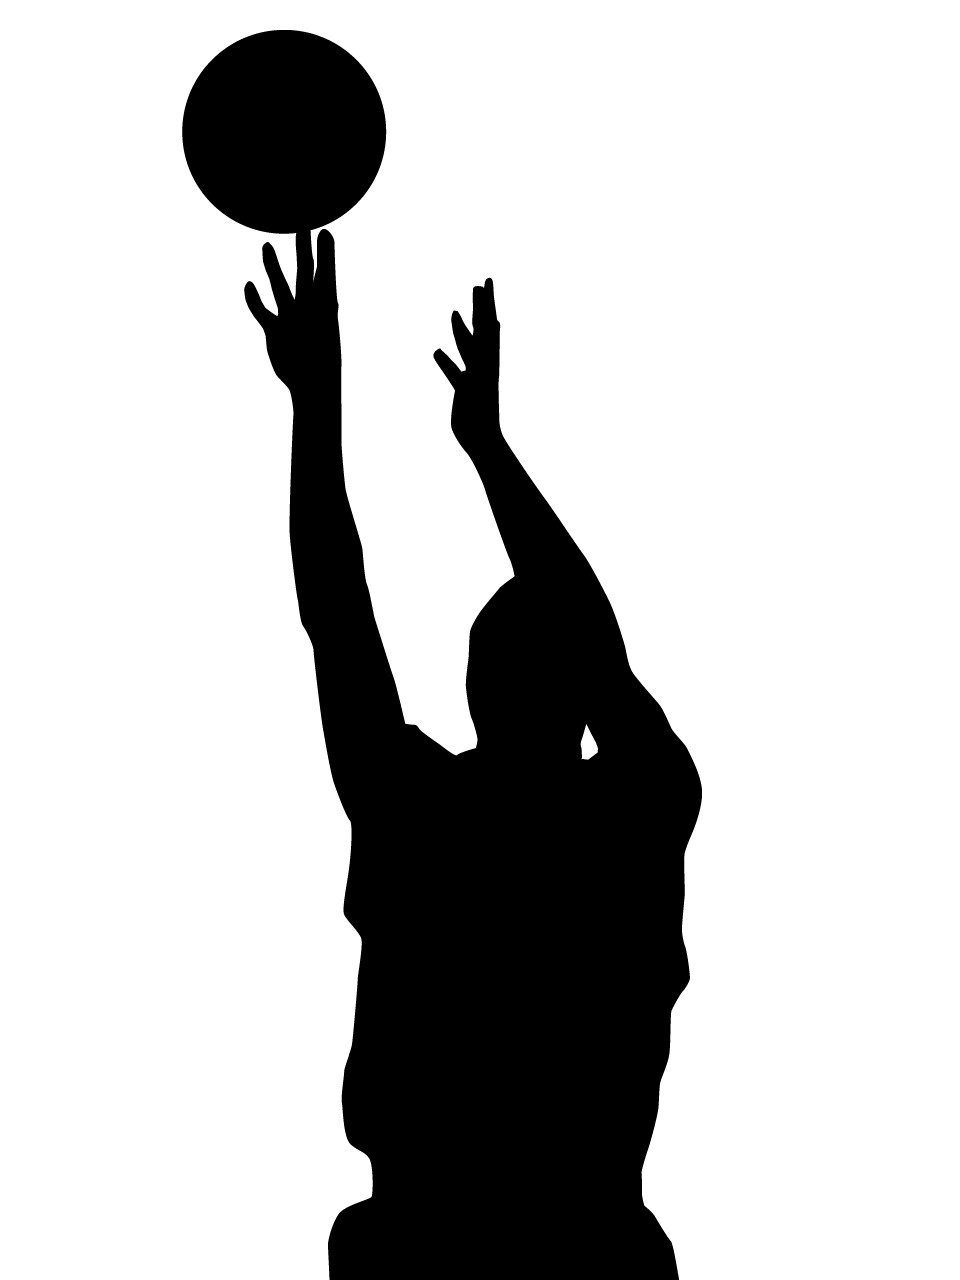 https://www.luccaskywalkers.com/wp-content/uploads/2019/10/avata-player.png